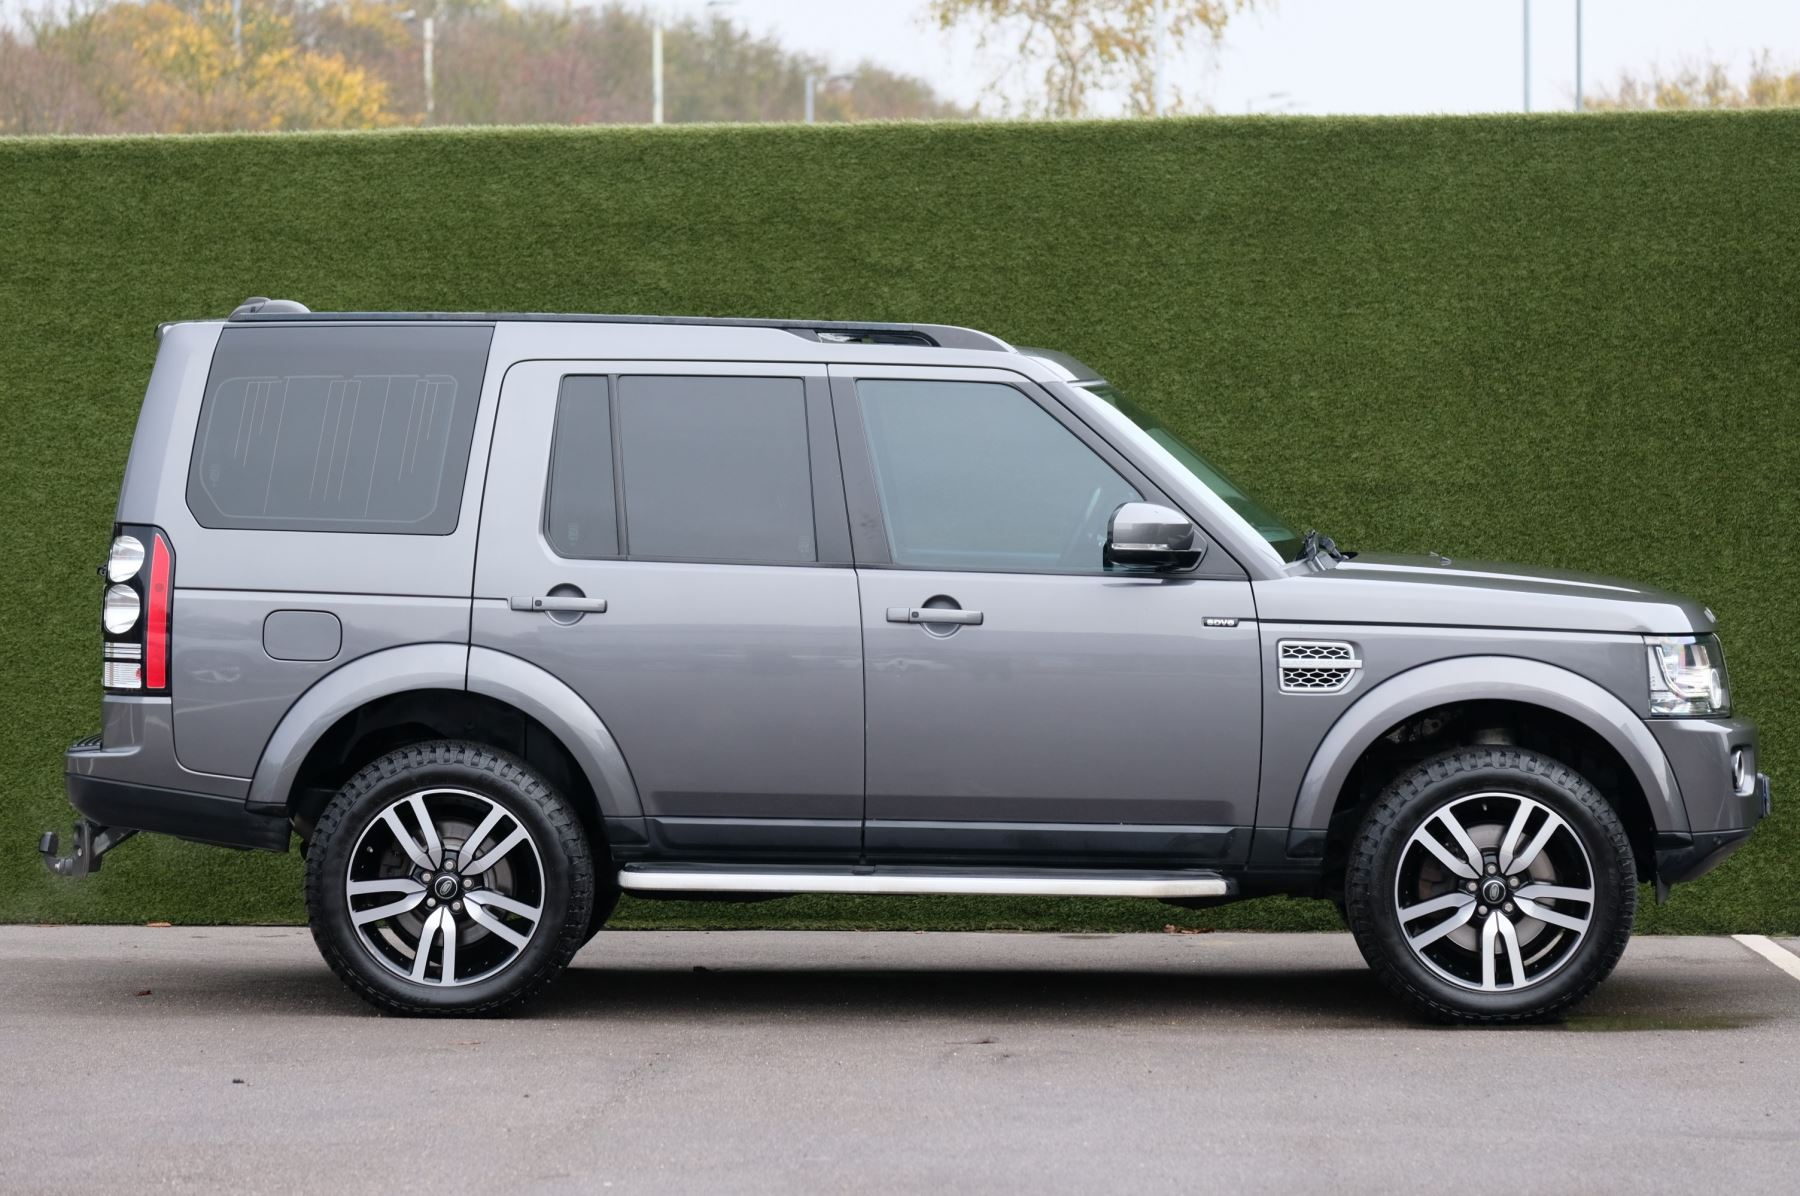 Land Rover Discovery 3.0 SDV6 HSE Luxury 5dr image 4